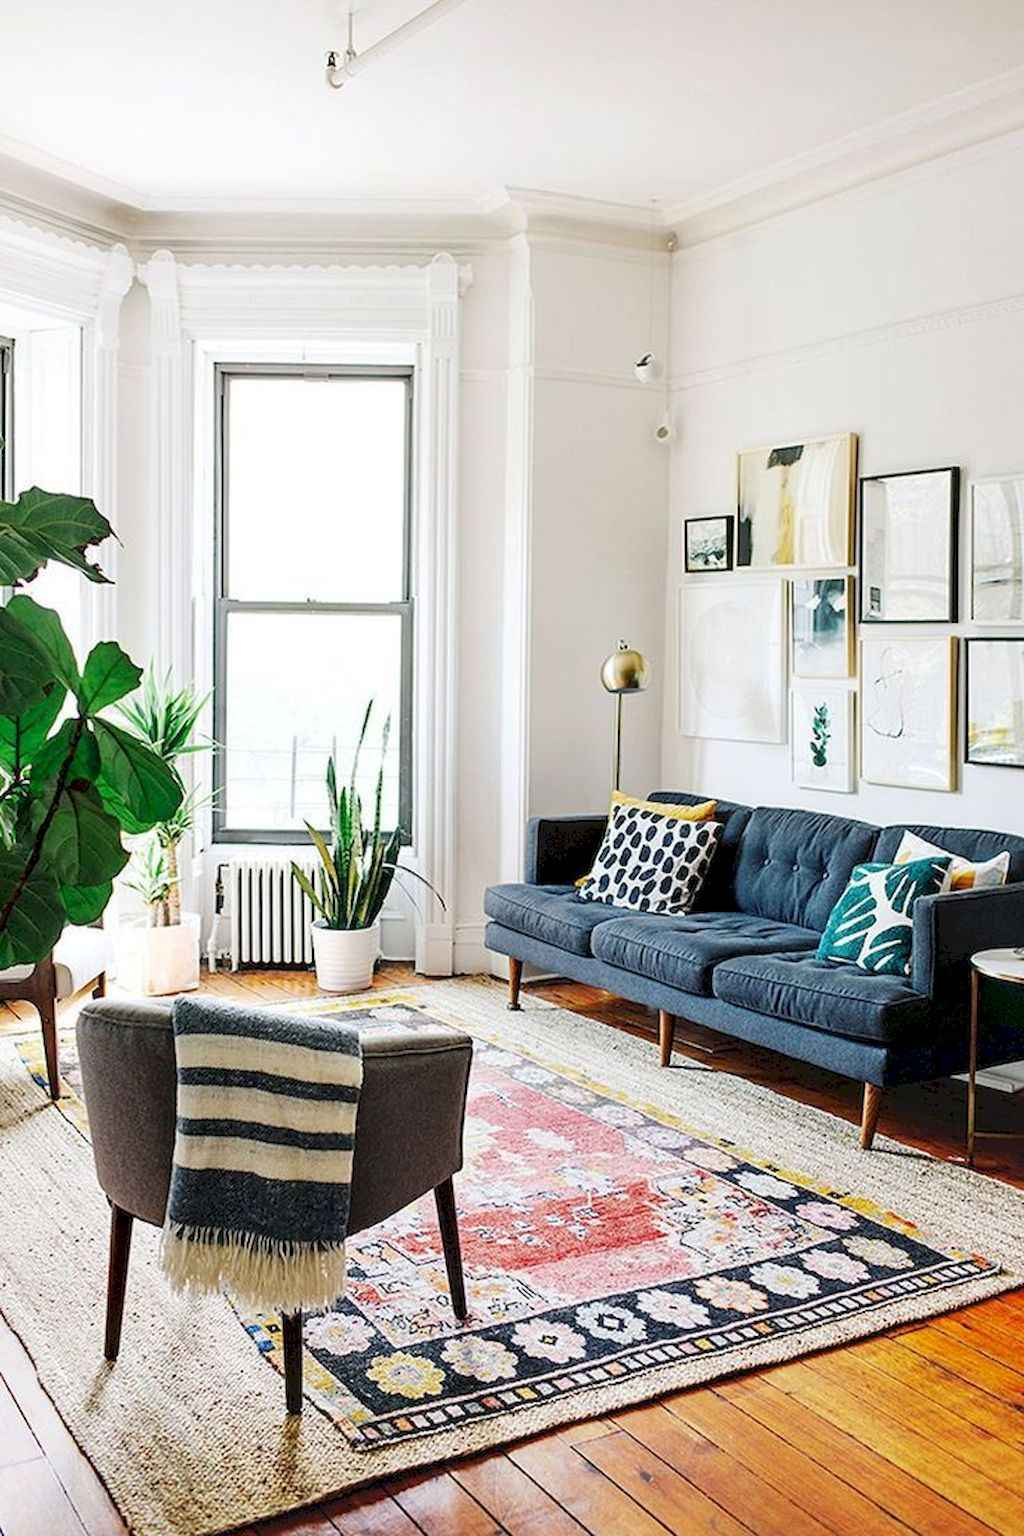 Cozy apartment decorating ideas on a budget (51)